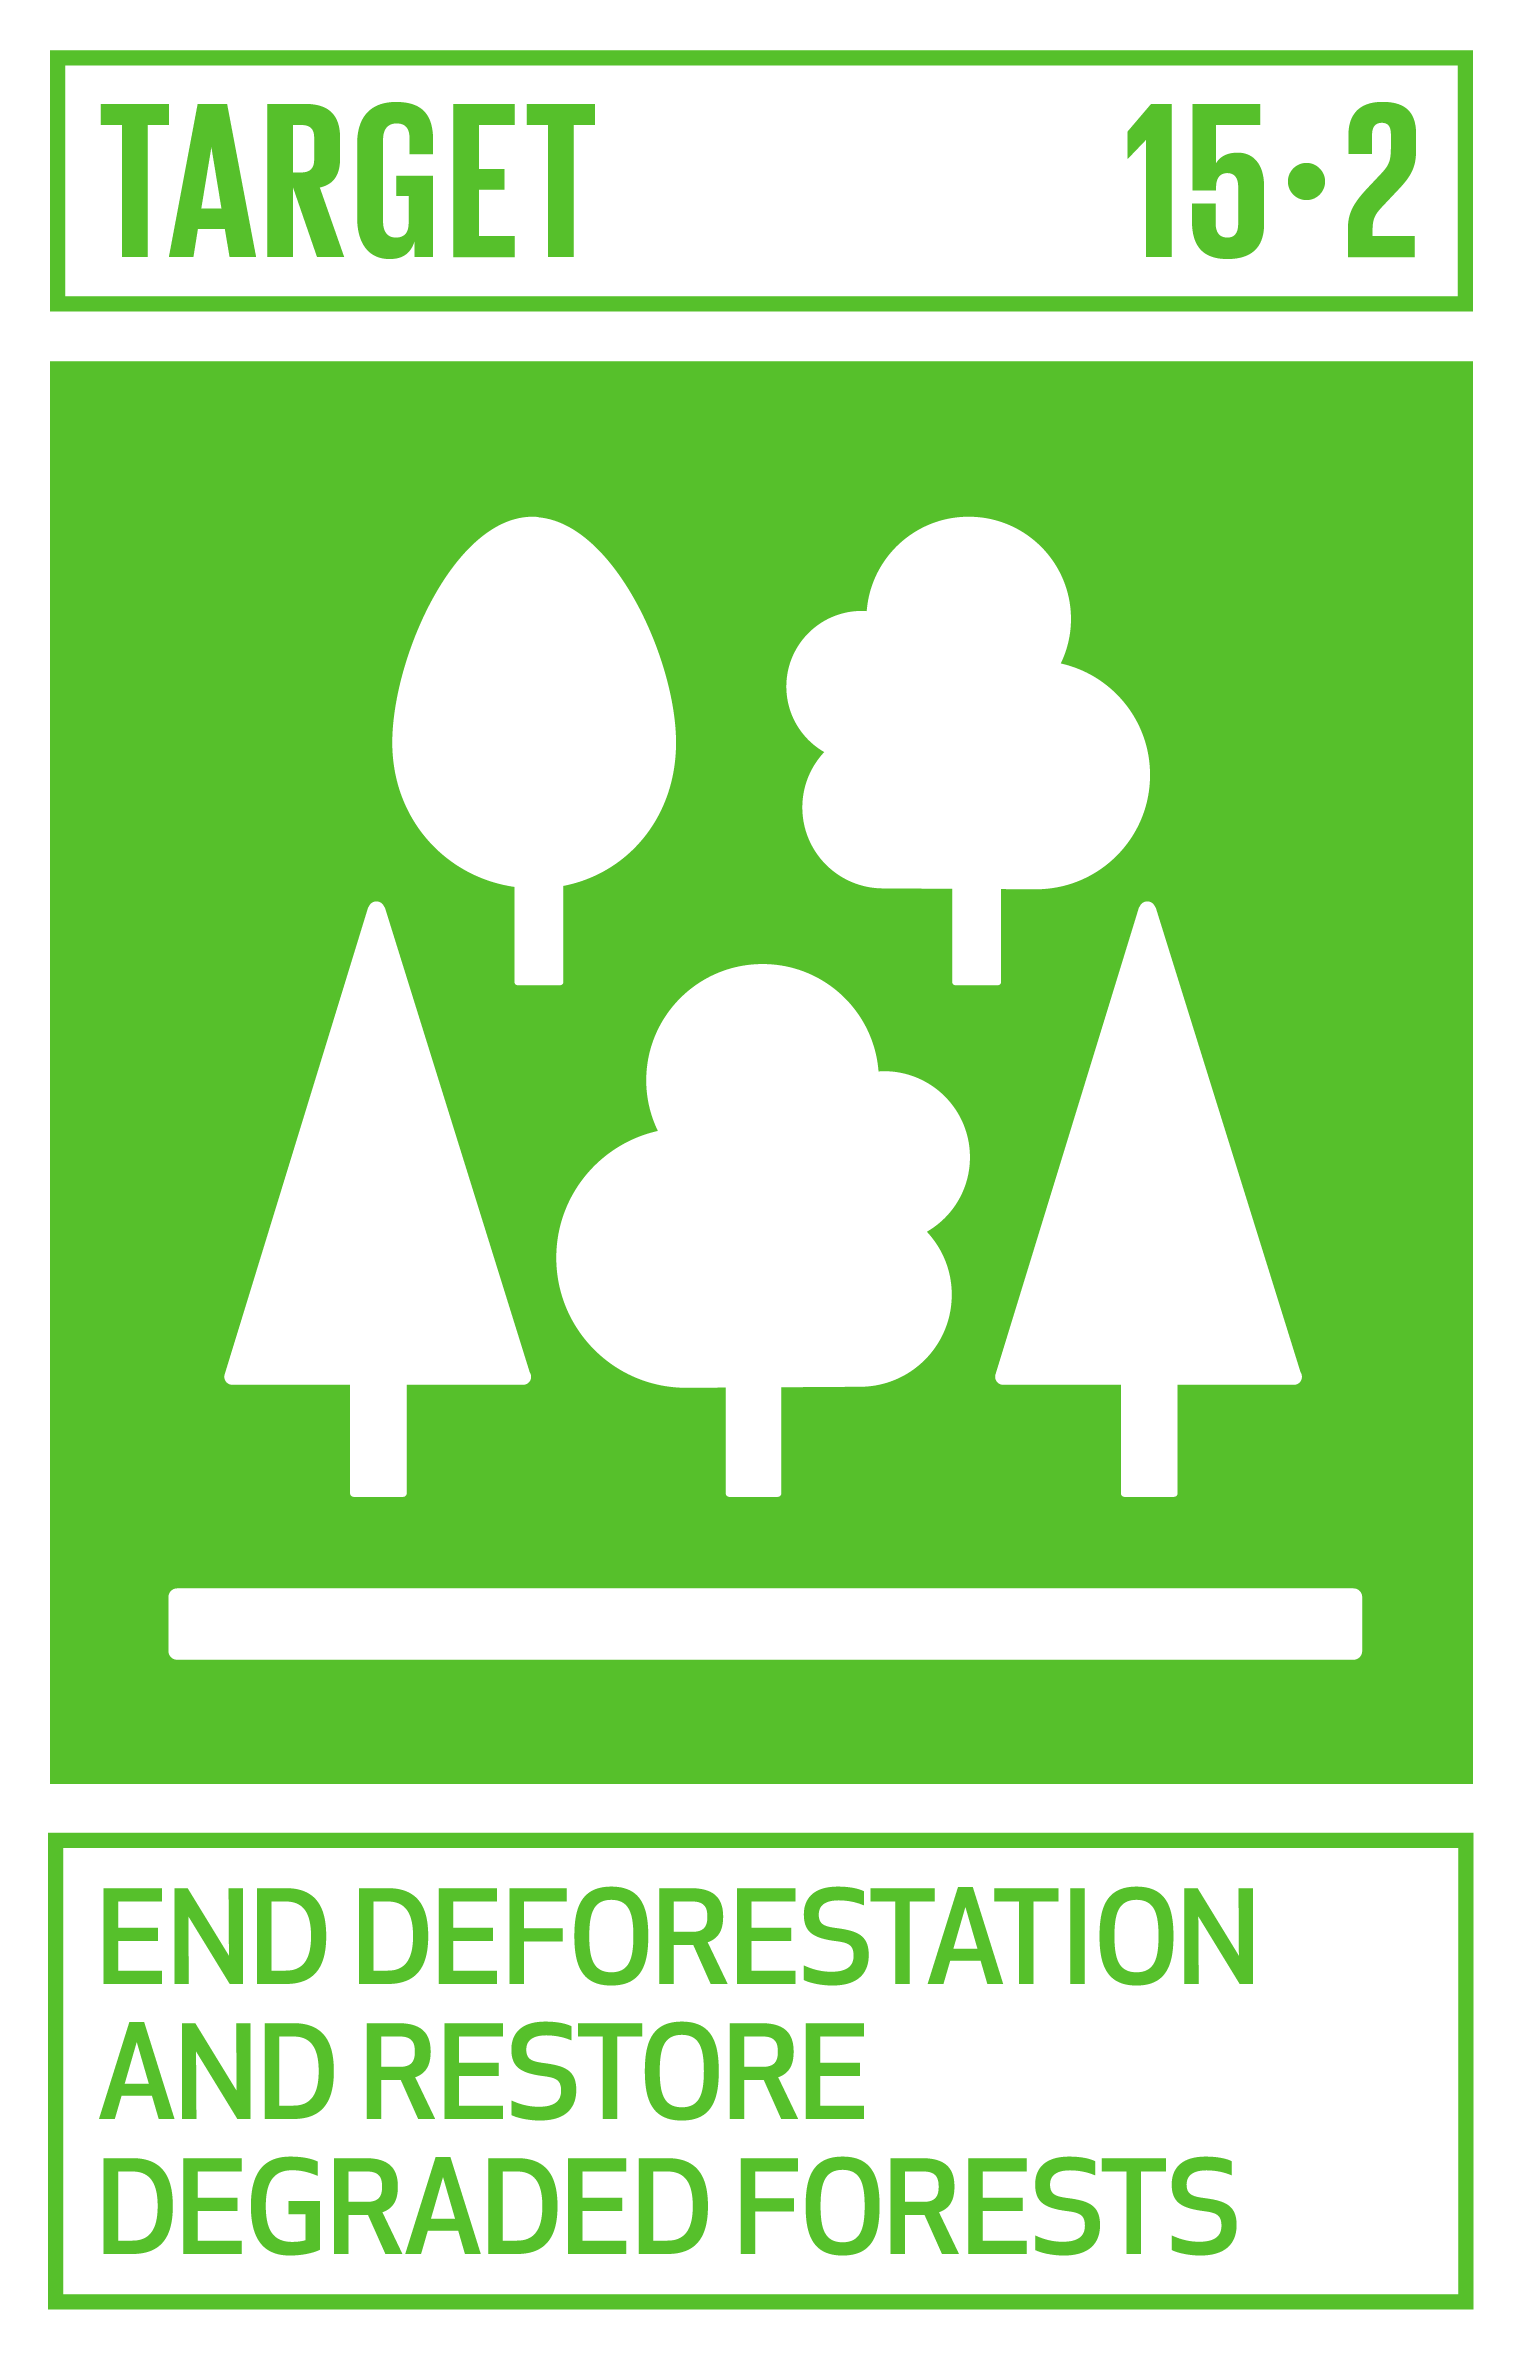 By 2020, promote the implementation of sustainable management of all types of forests, halt deforestation, restore degraded forests and substantially increase afforestation and reforestation globally.   INDICATOR    15.2.1  Progress towards sustainable forest management